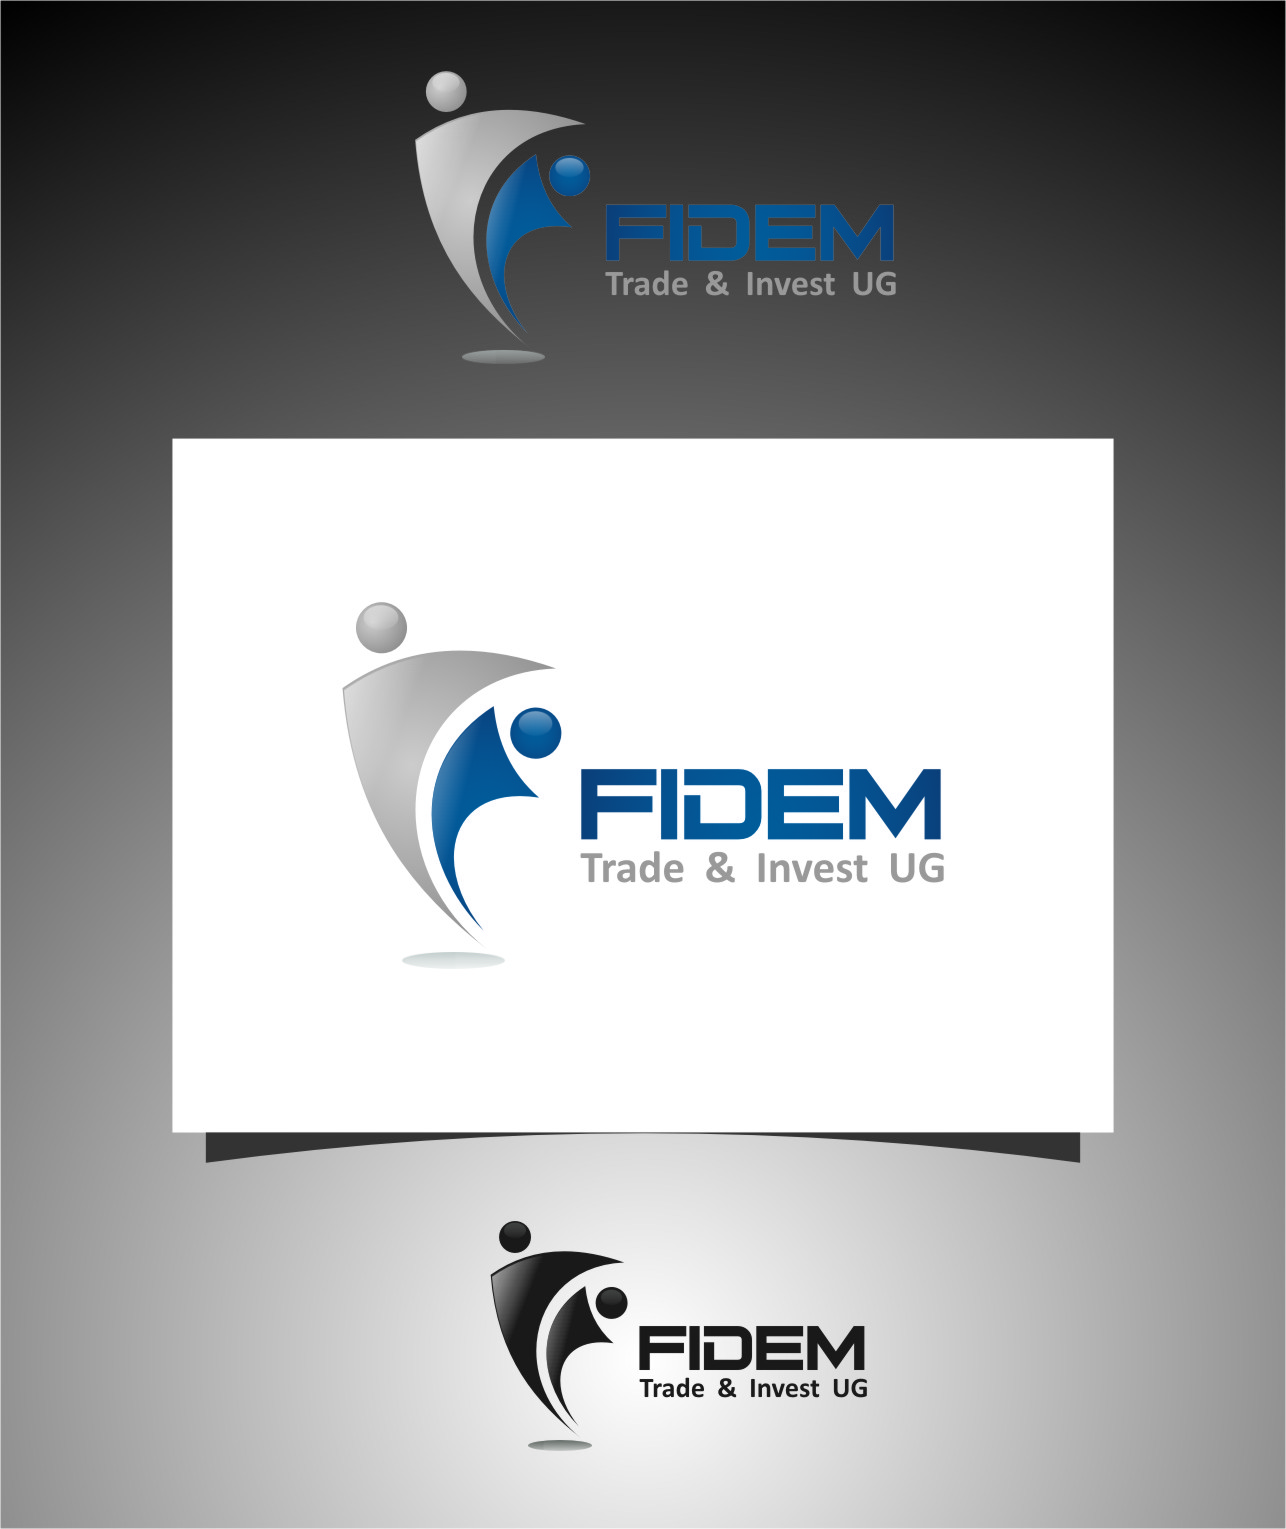 Logo Design by RasYa Muhammad Athaya - Entry No. 235 in the Logo Design Contest Professional Logo Design for FIDEM Trade & Invest UG.